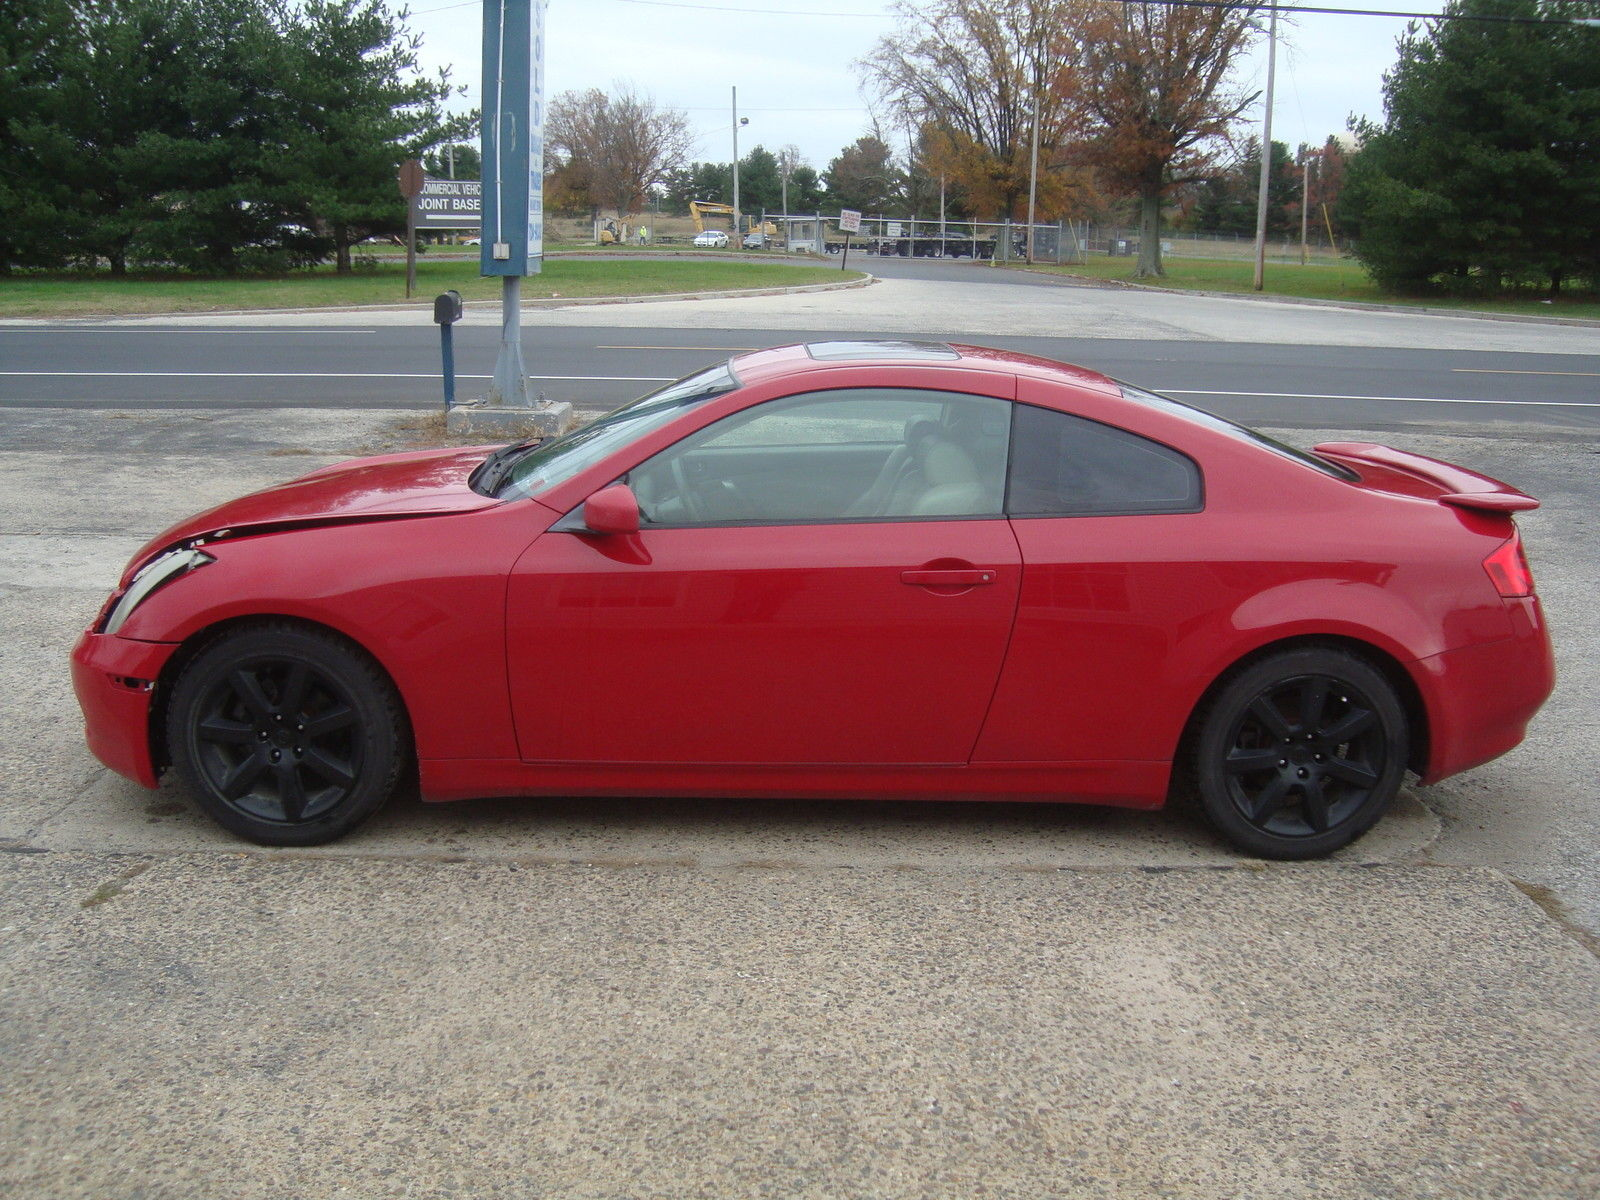 2004 infiniti g35 coupe salvage rebuildable for sale. Black Bedroom Furniture Sets. Home Design Ideas